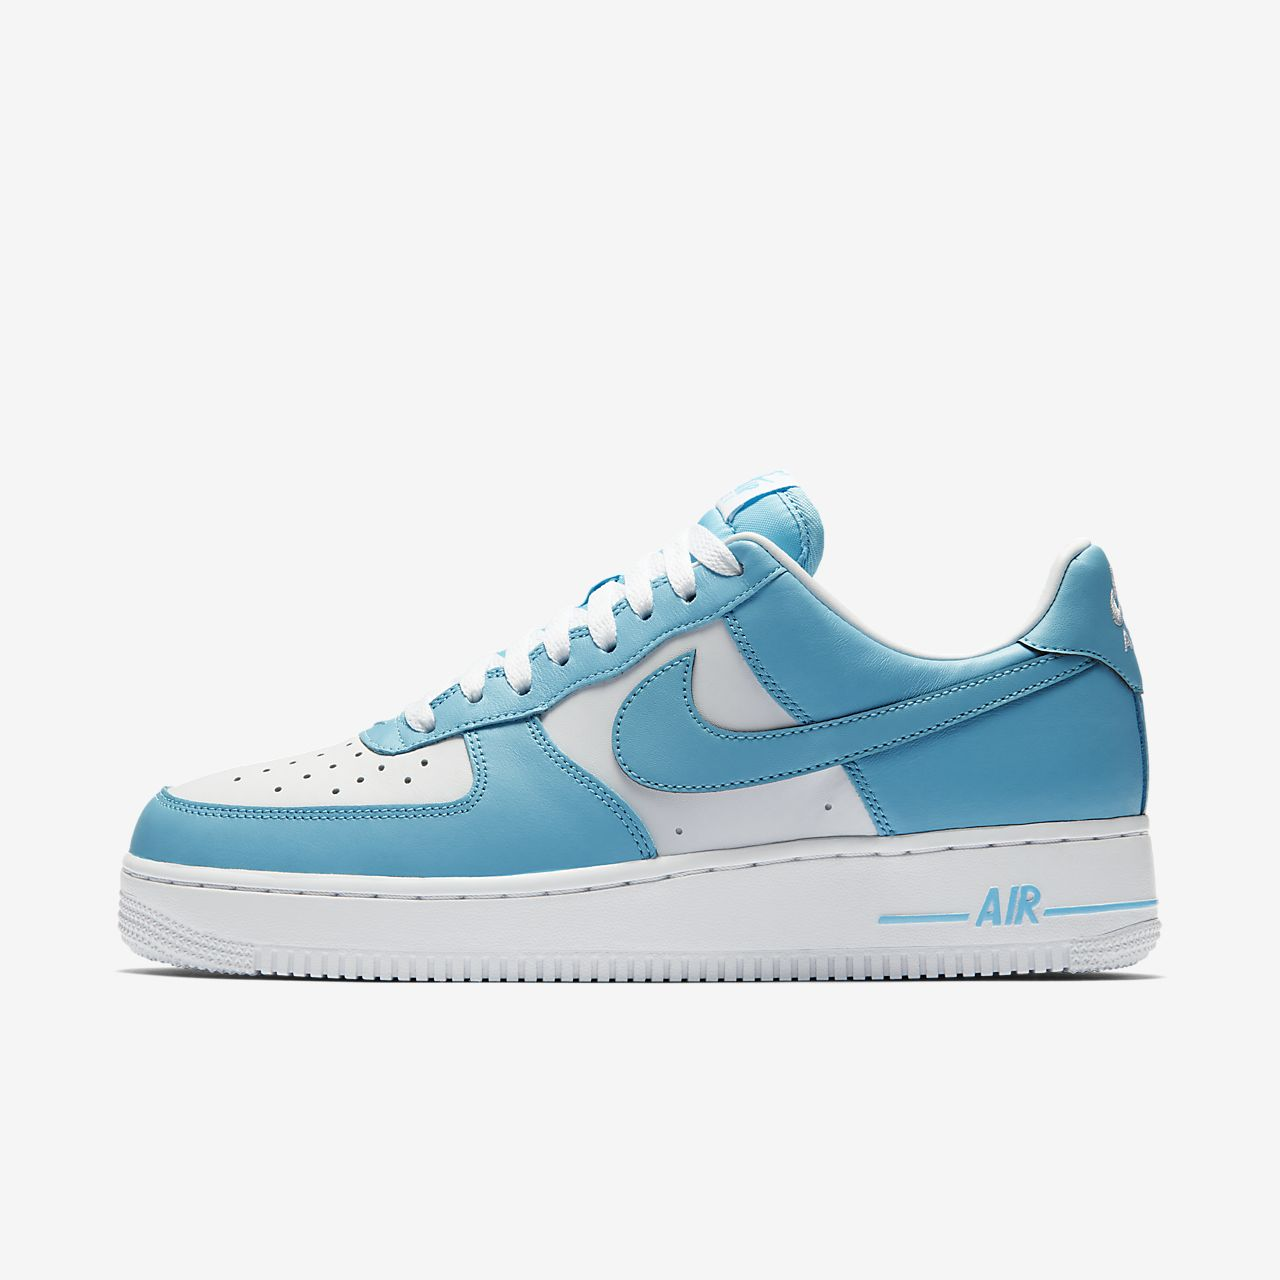 ... Chaussure Nike Air Force 1 Low pour Homme